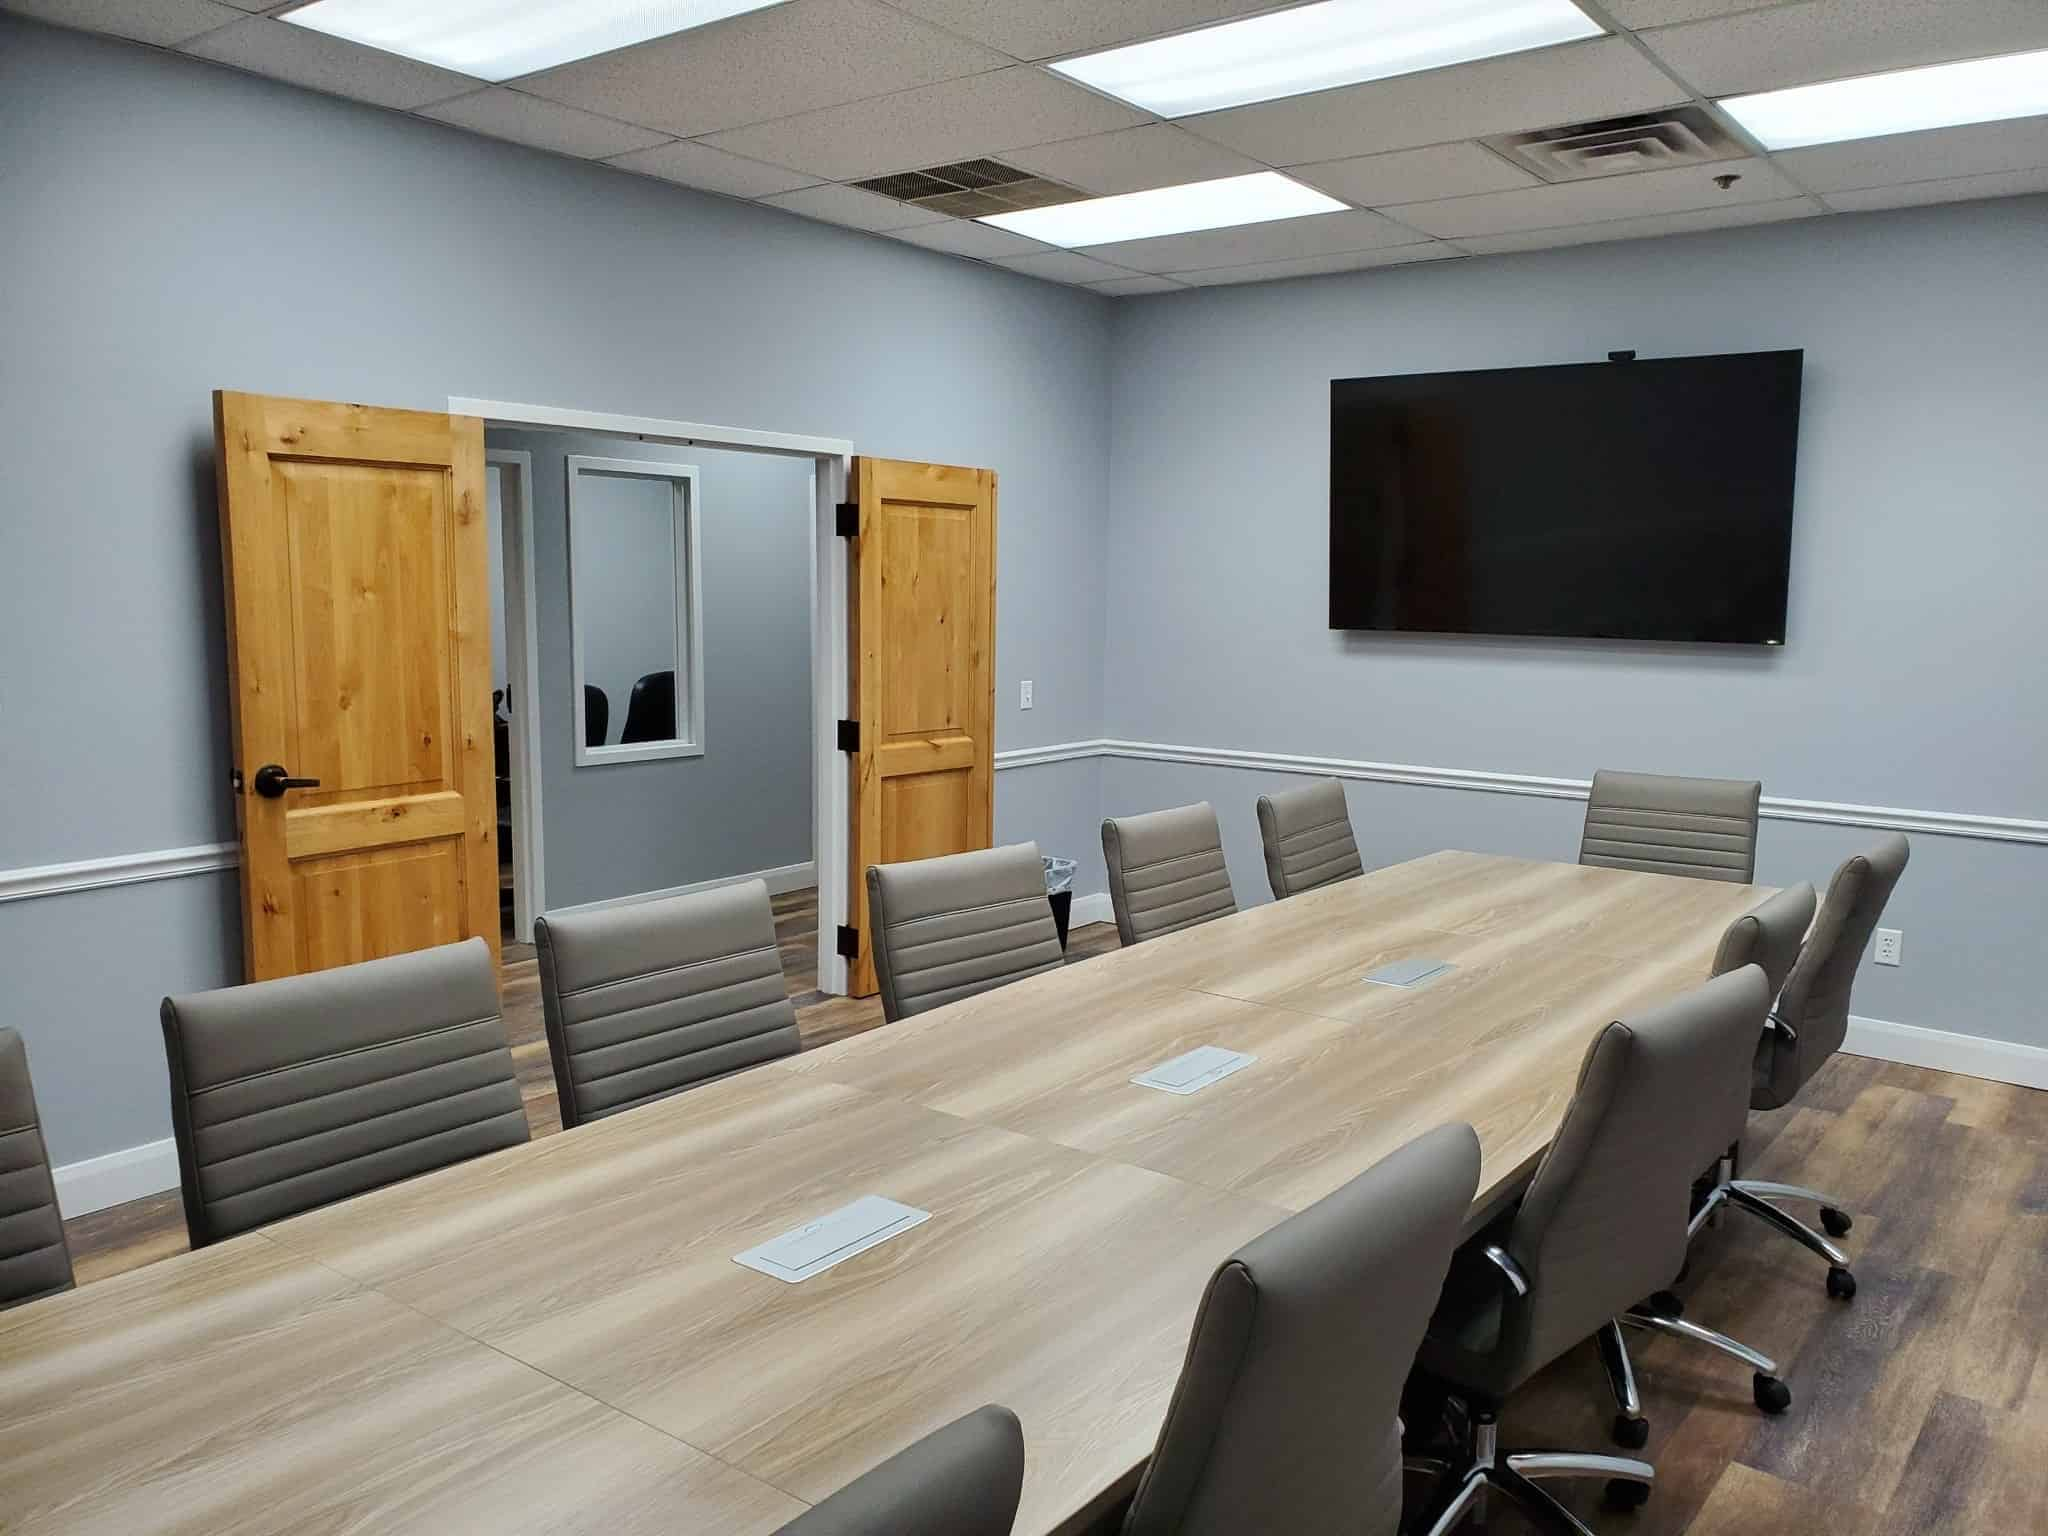 Image of Skymail's new conference room.